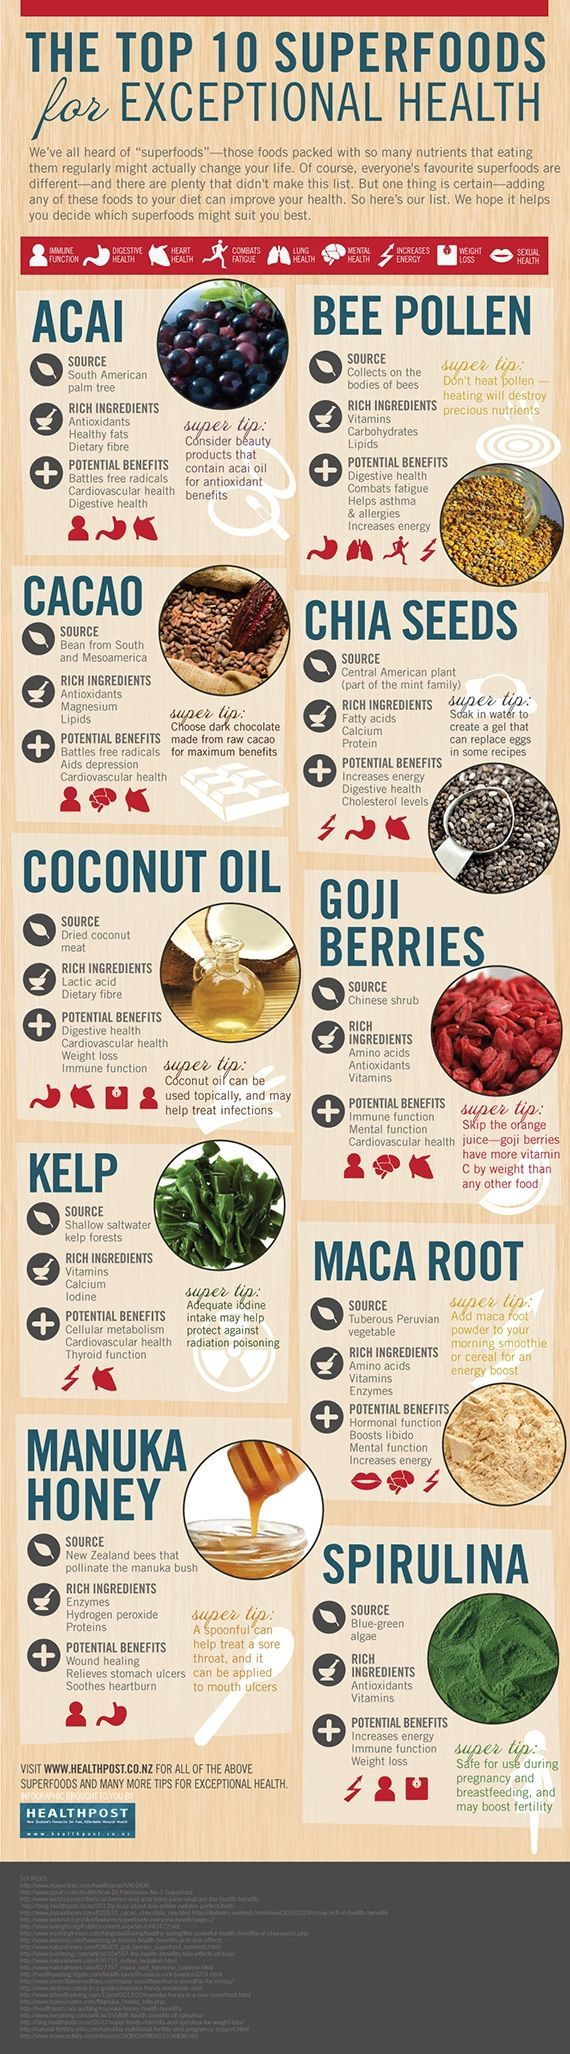 TOP 10 SUPERFOODS FOR EXCEPTIONAL HEALTH. Their concentrated food value provides an efficient way to obtain great nutrition.